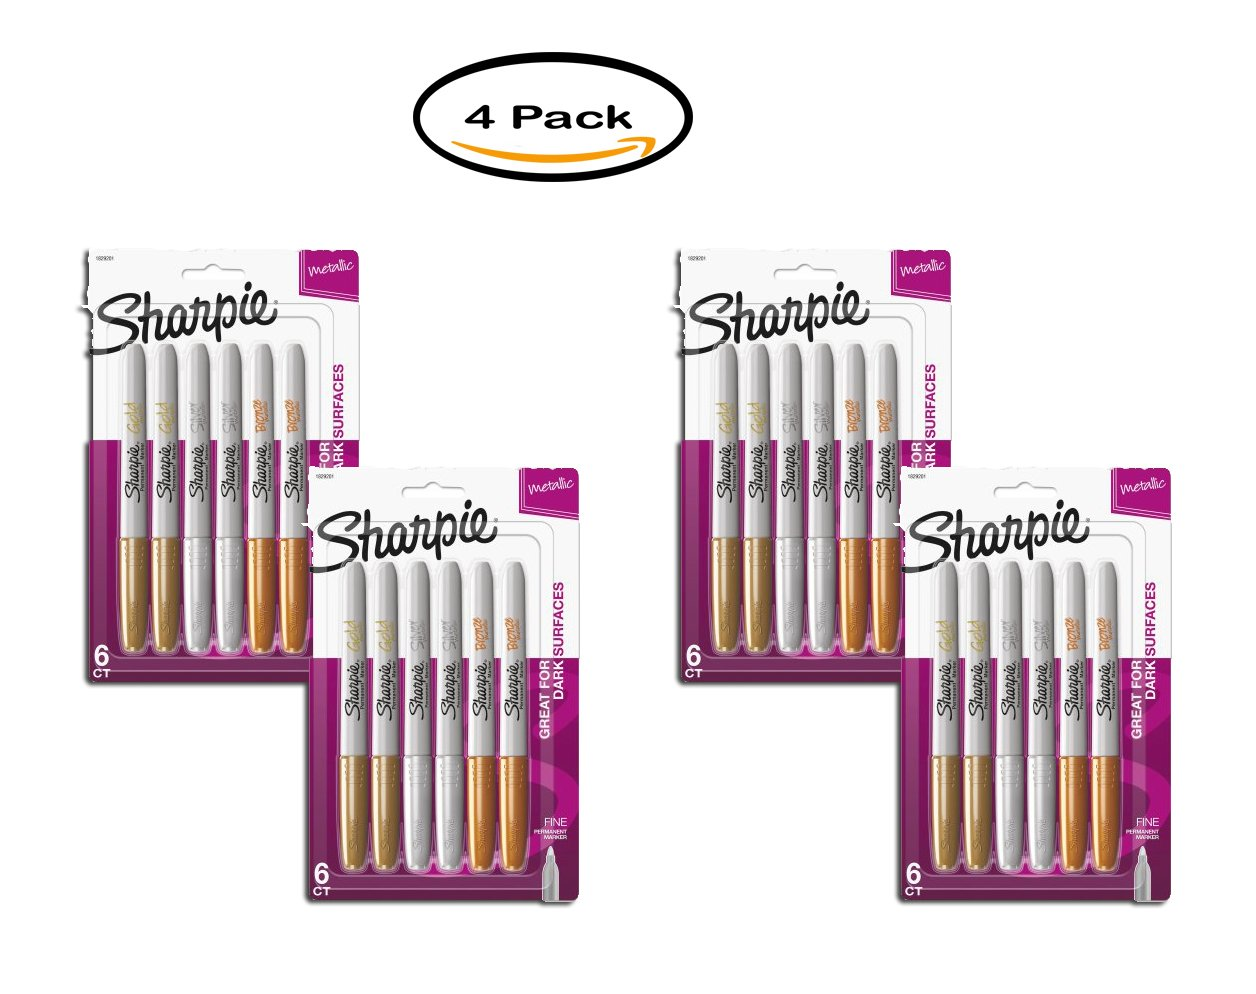 PACK OF 4 - Sharpie Metallic Permanent Markers, Assorted, 6/Pack